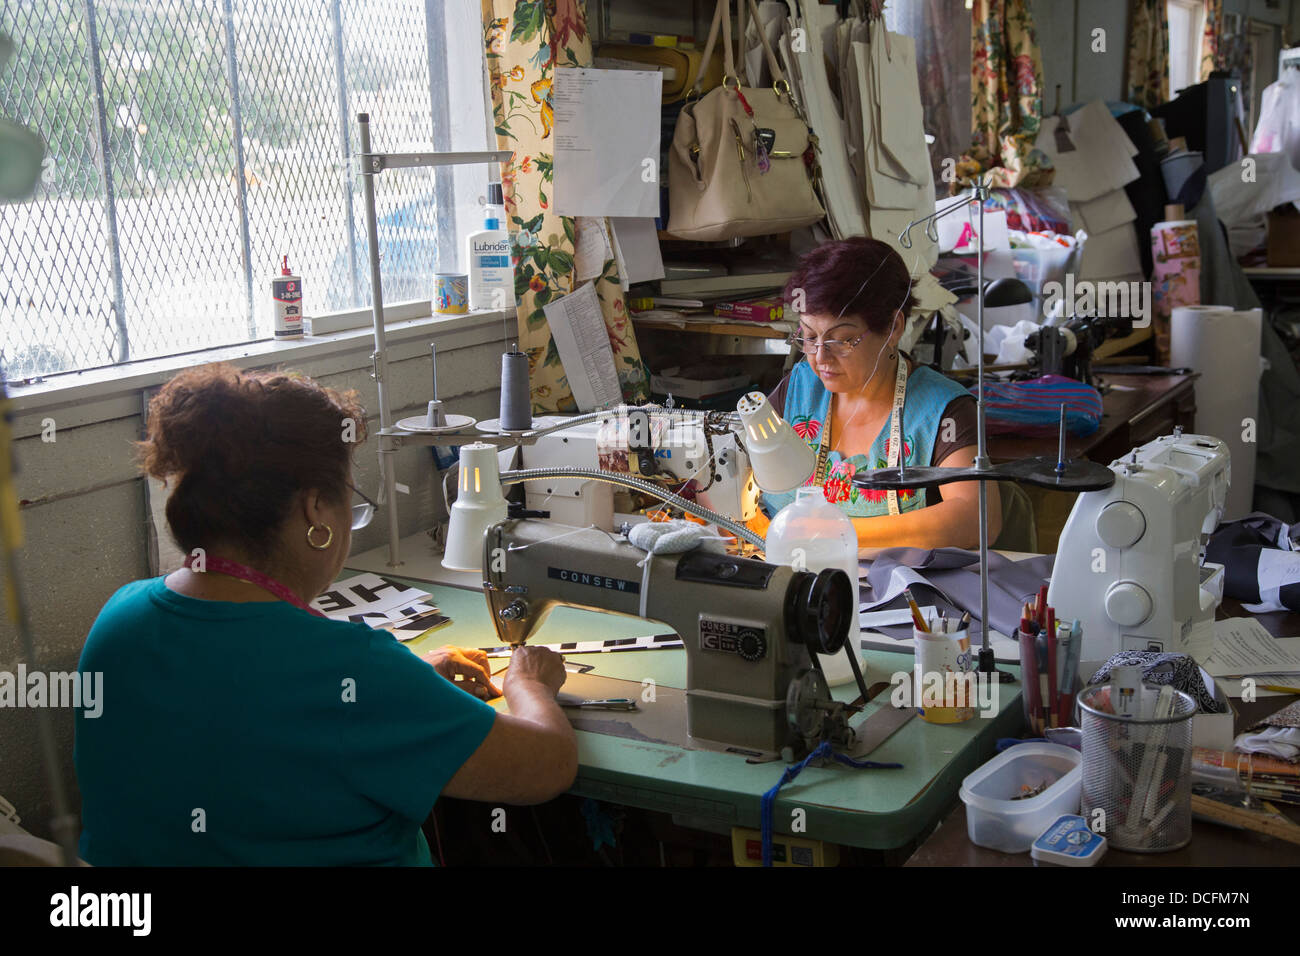 Sewing Cooperative Stock Photos   Sewing Cooperative Stock Images ... 85c4ba65cd8